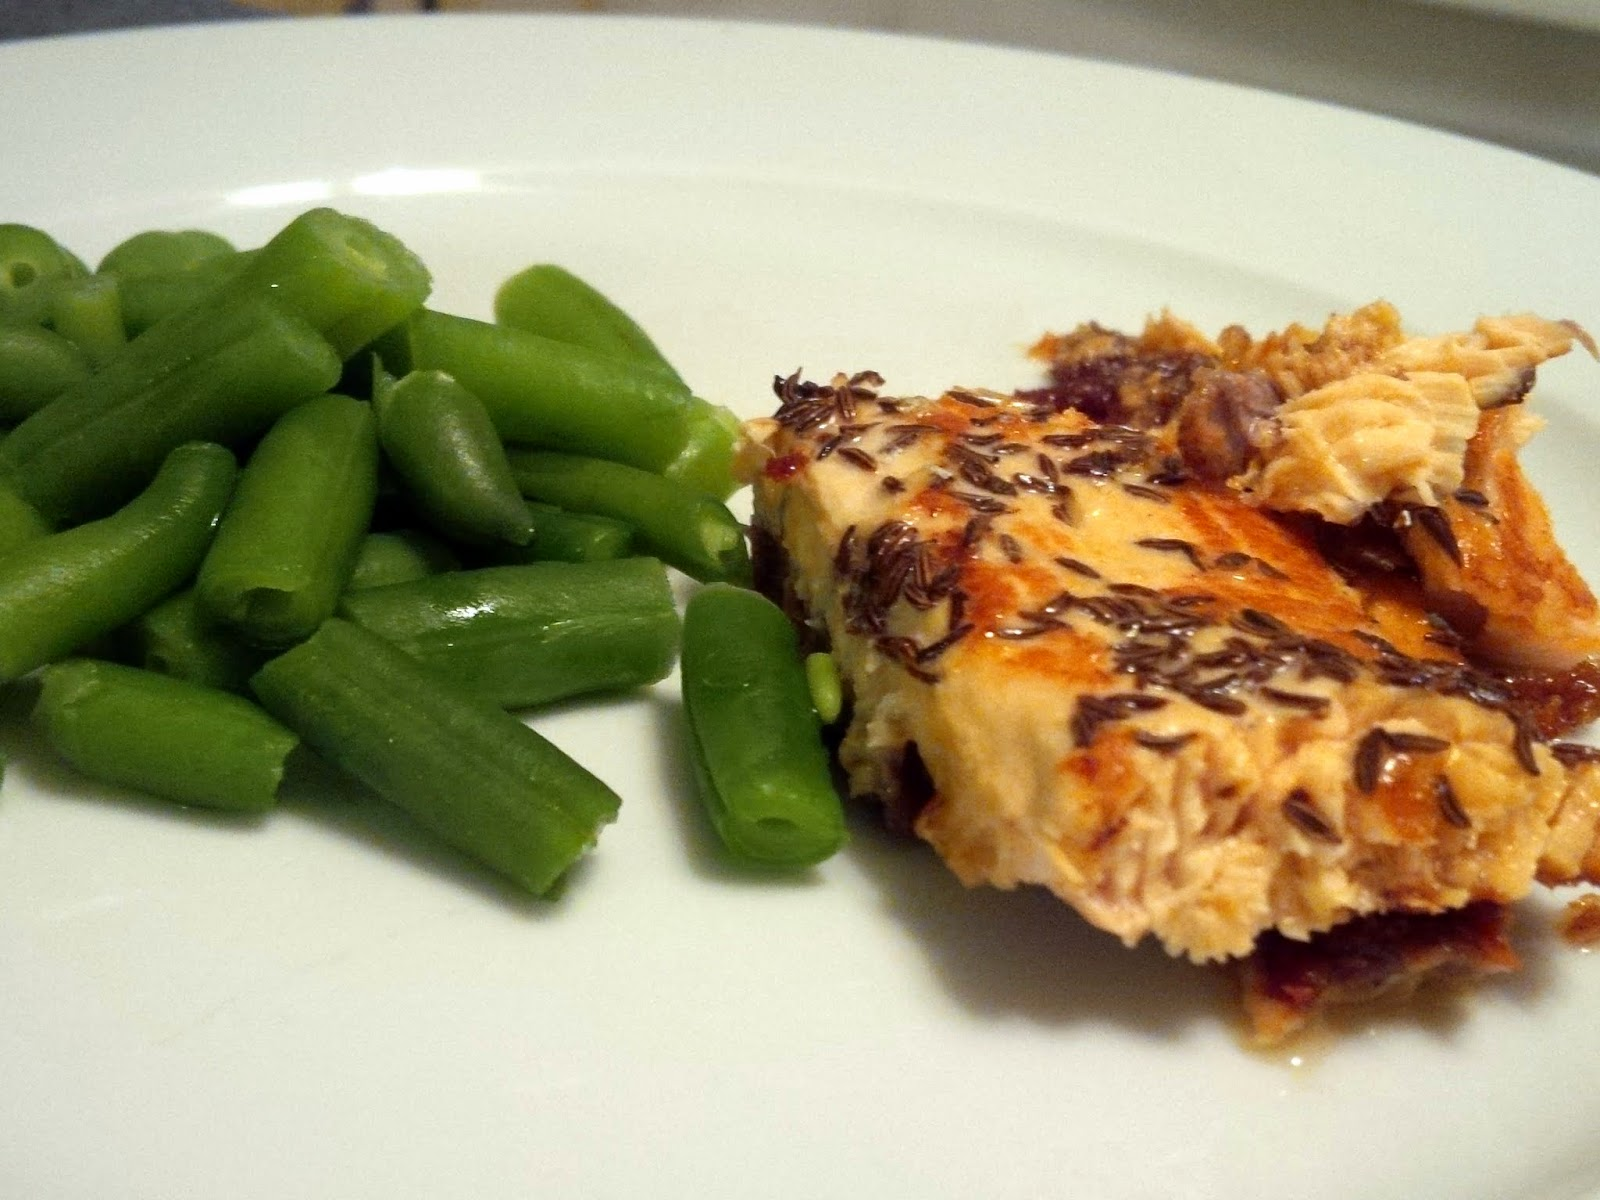 Lemon Caraway Salmon served with green beans.